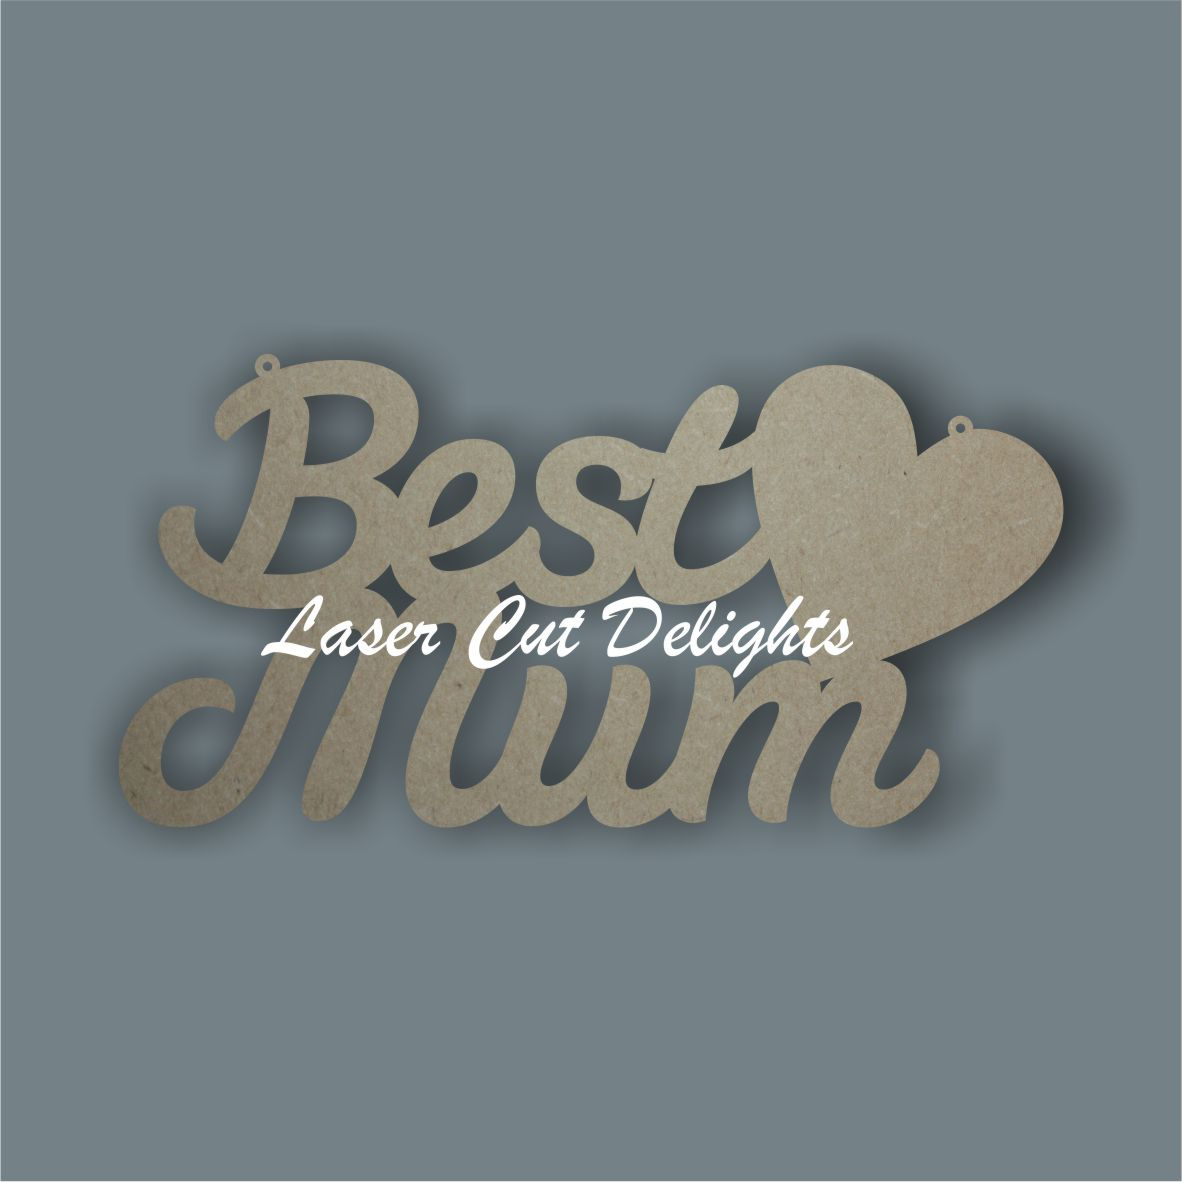 Best MUM DAD GRAN / Laser Cut Delights